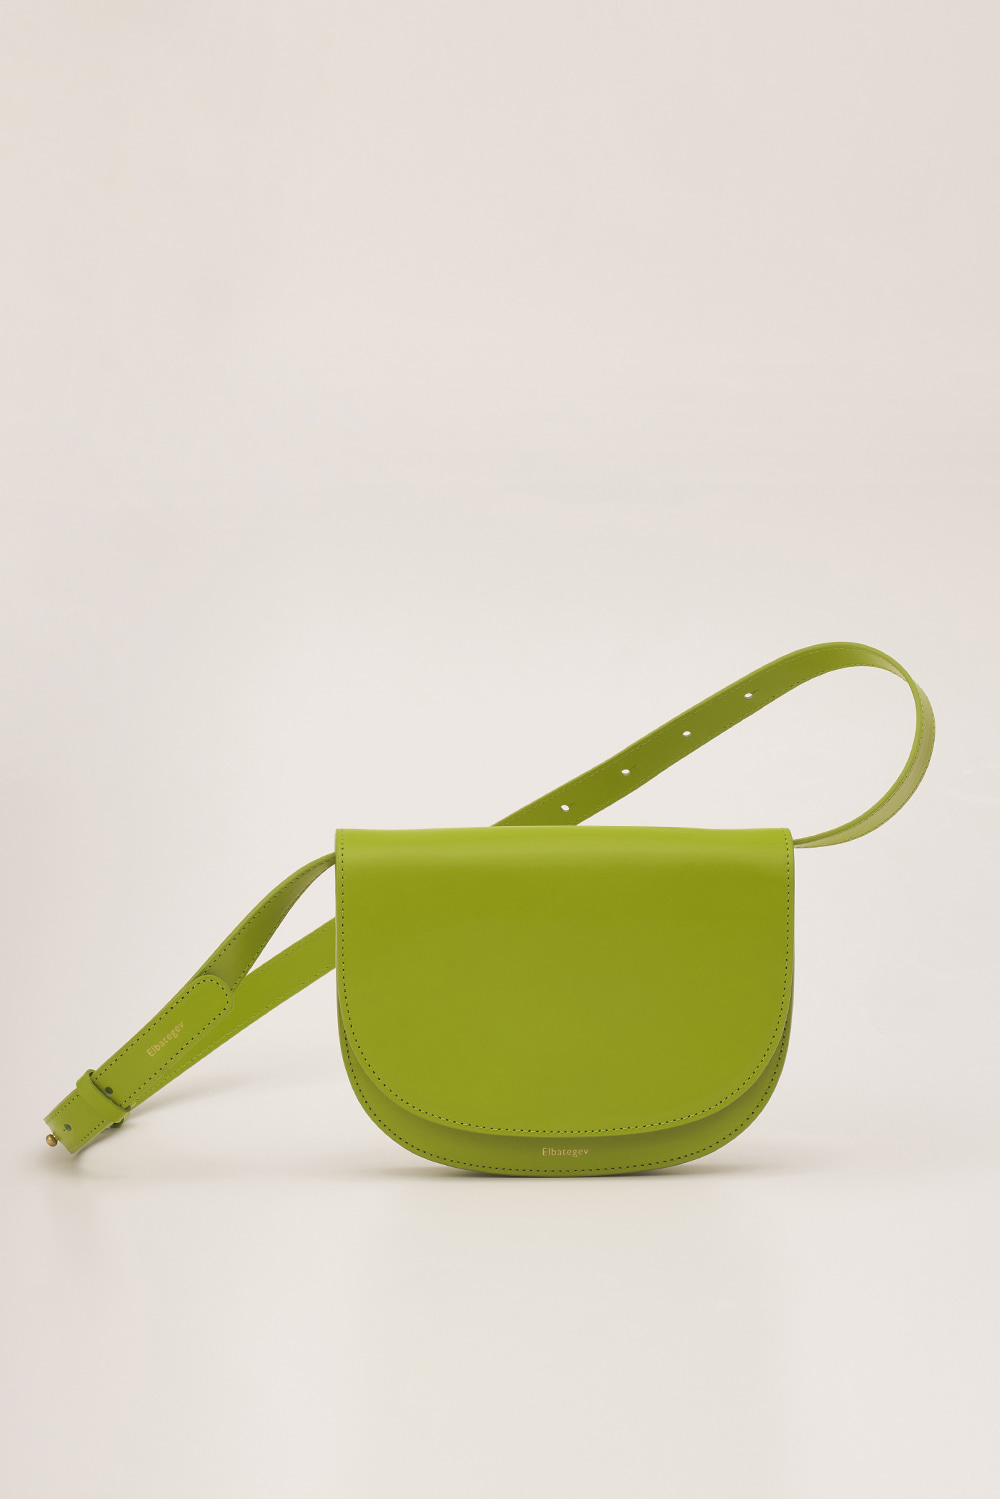 Elba Minibag in ChaCha Leaf